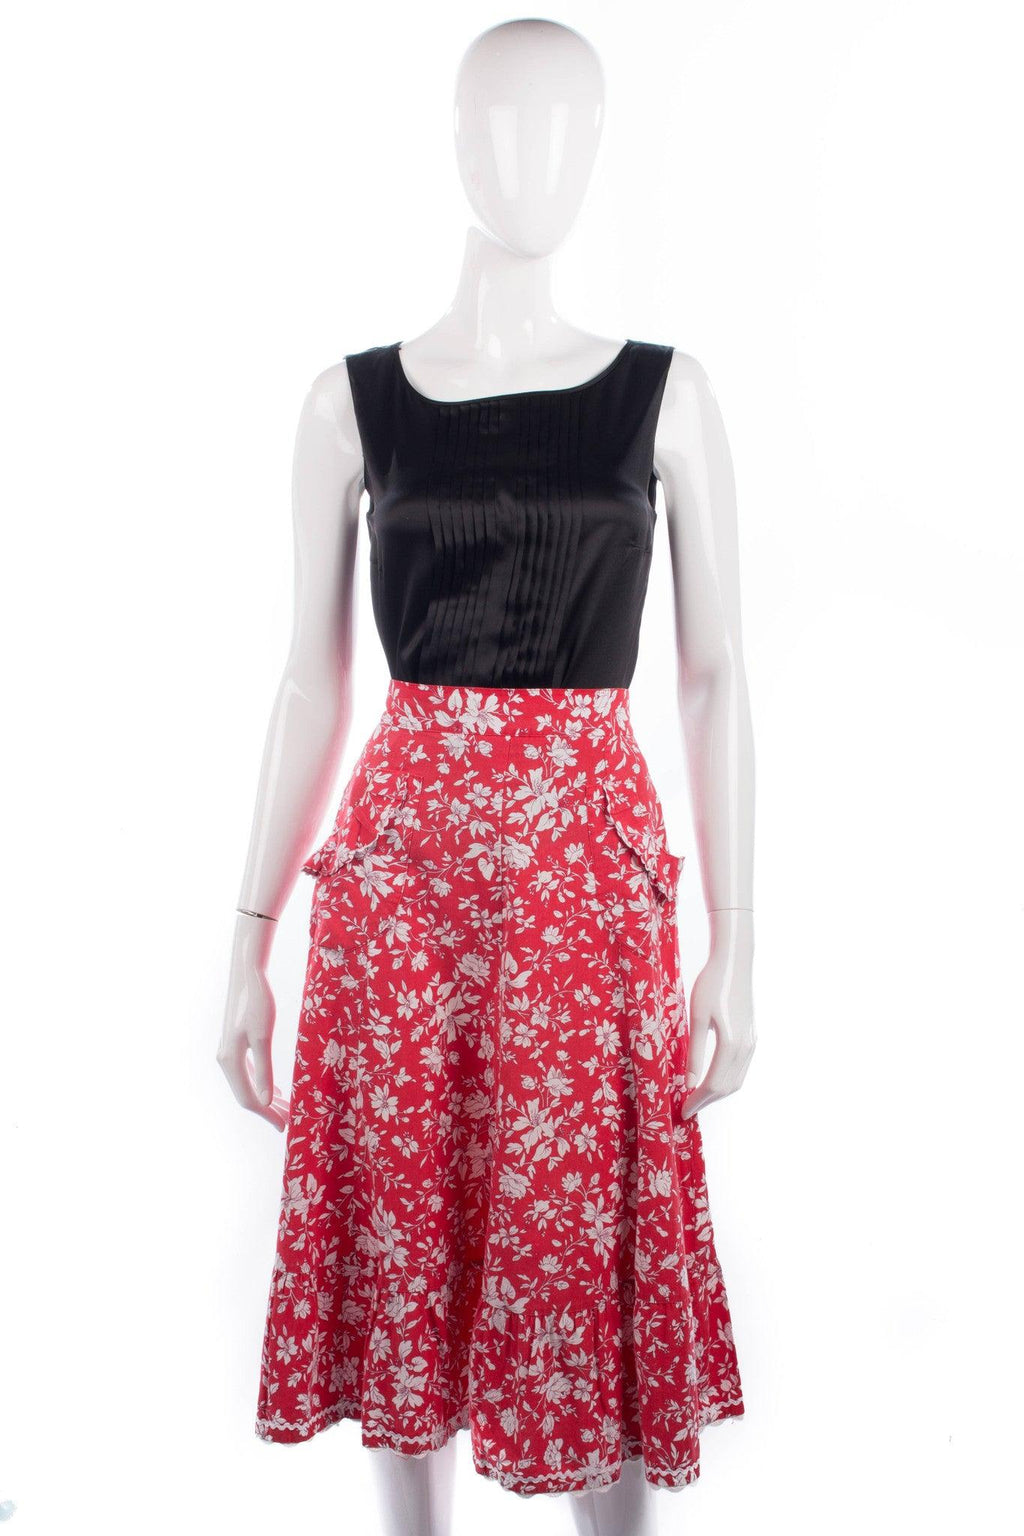 Exclusive Fashion Vintage Skirt Cotton Red Floral with Pockets UK10/12